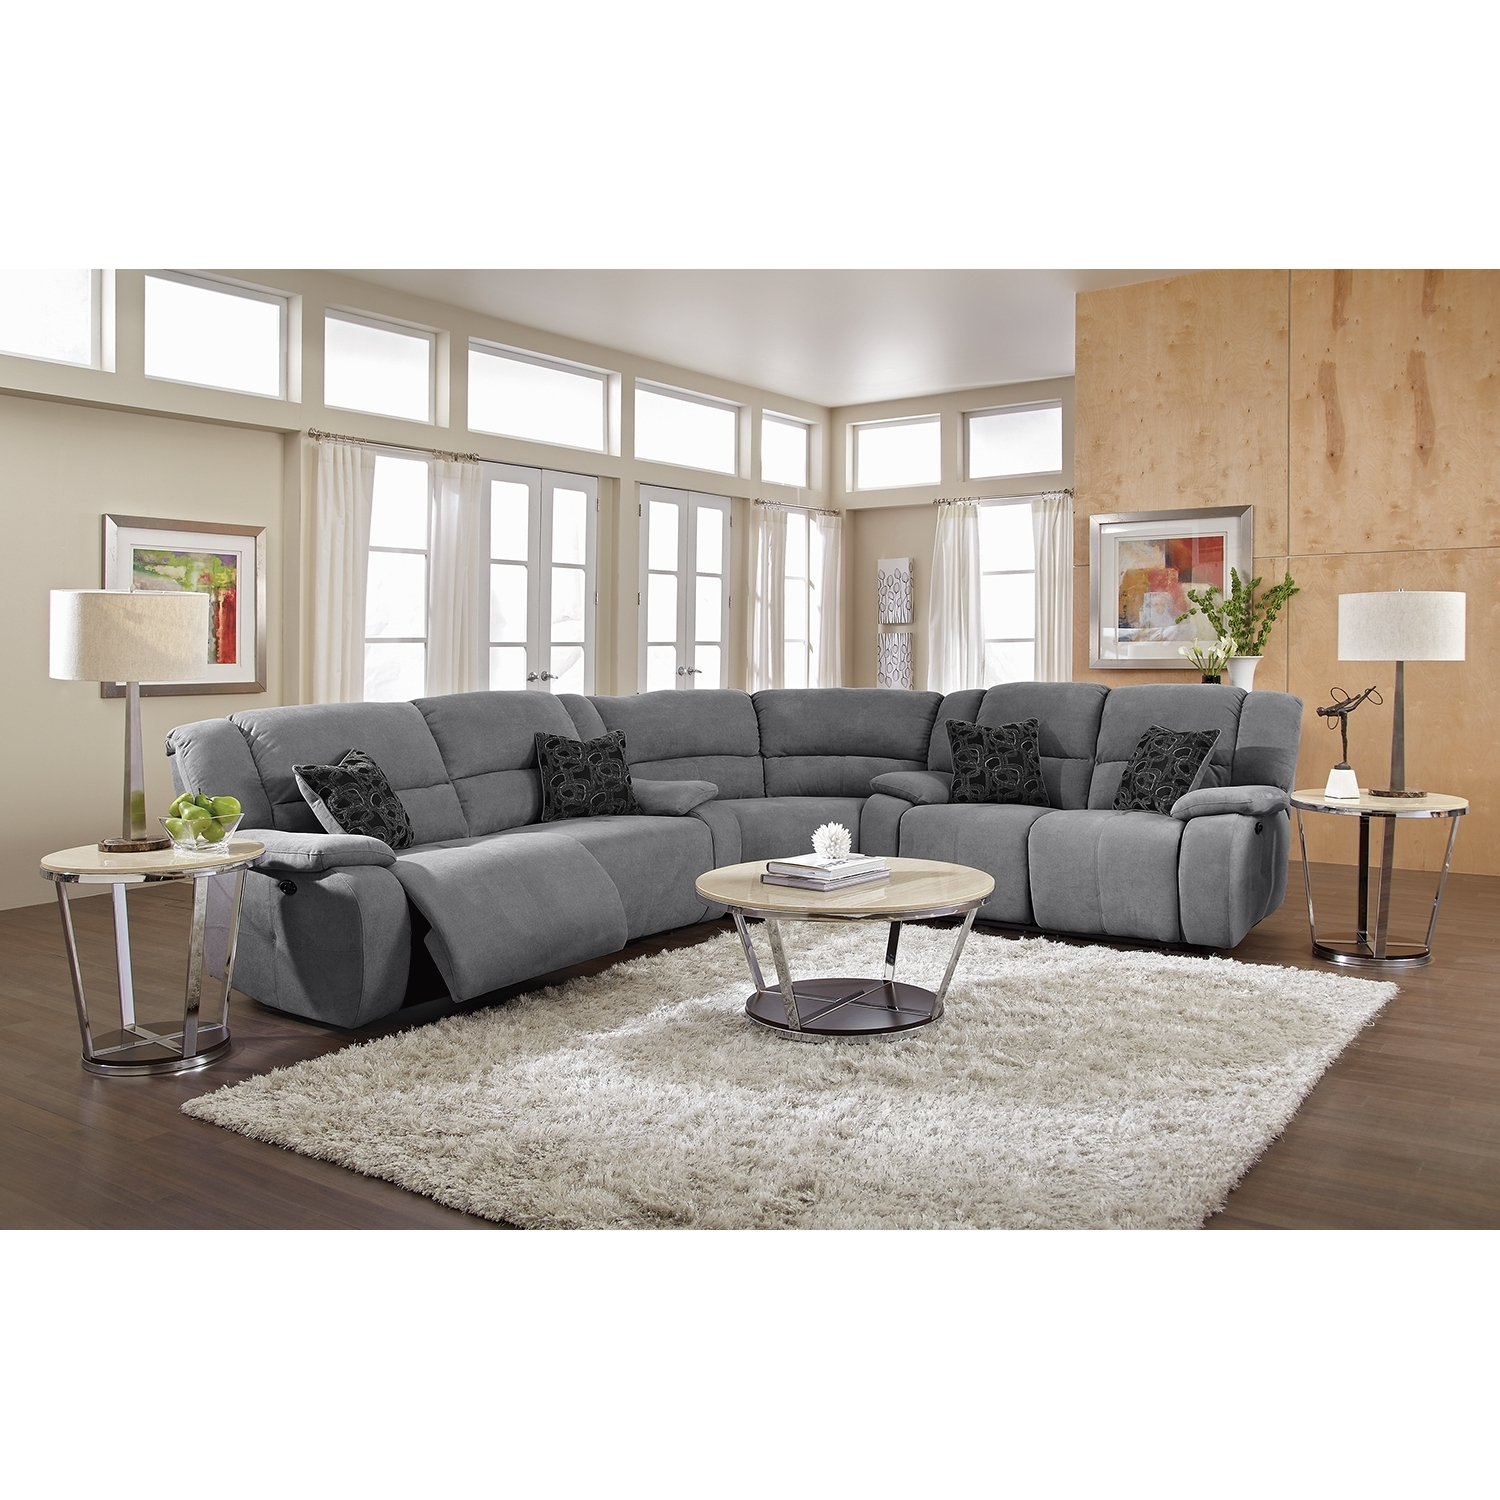 Reclining Sectional Leather Sectional Grey Sectional Sectionals Inside 2018 Grey Chaise Sectionals (View 13 of 15)